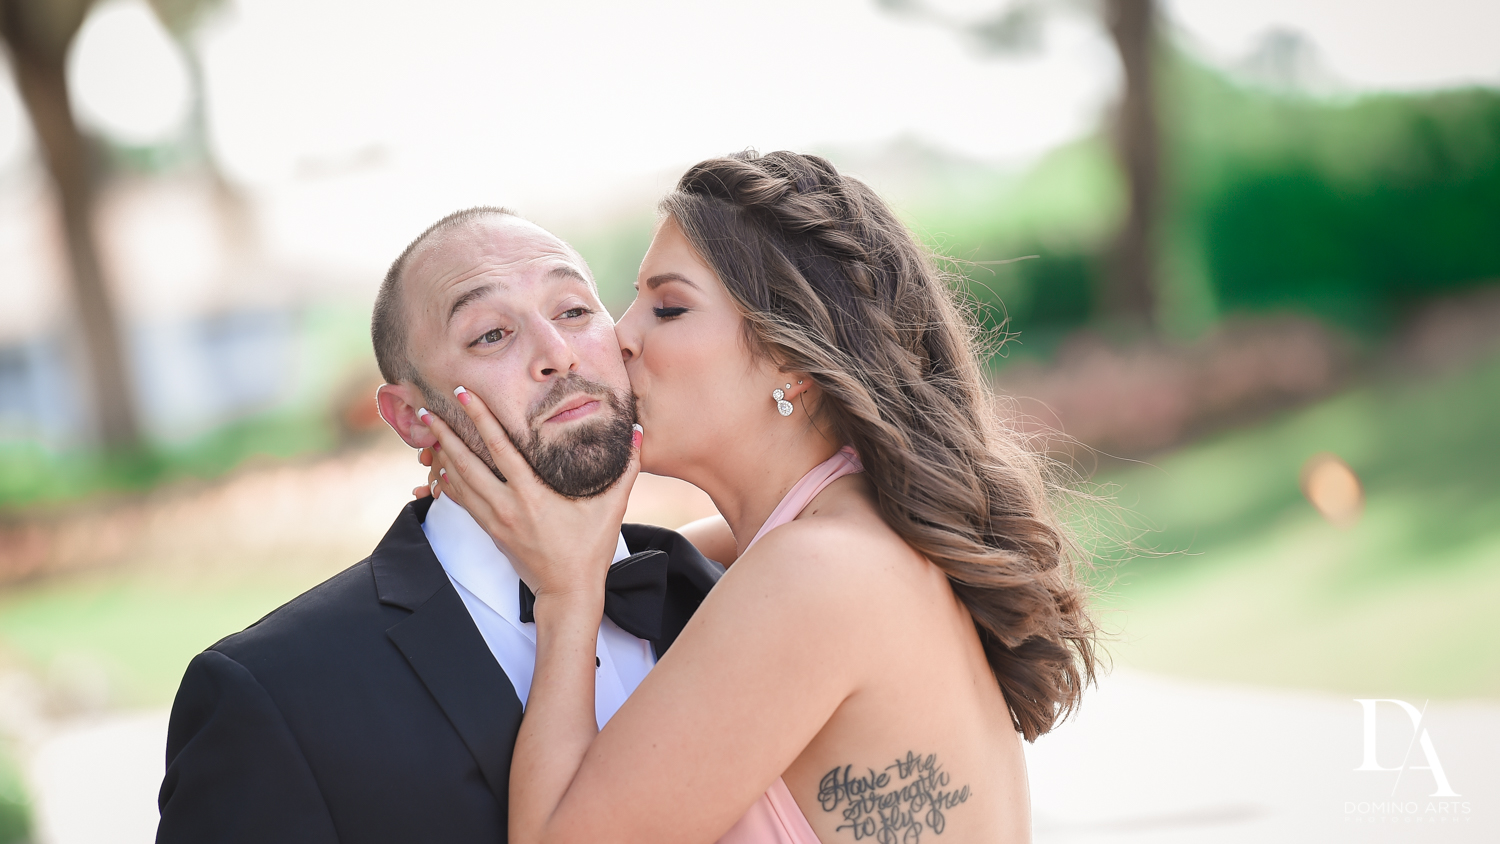 Fun candid photos at Romantic Outdoors Wedding at Woodfield Country Club in Boca Raton, Florida